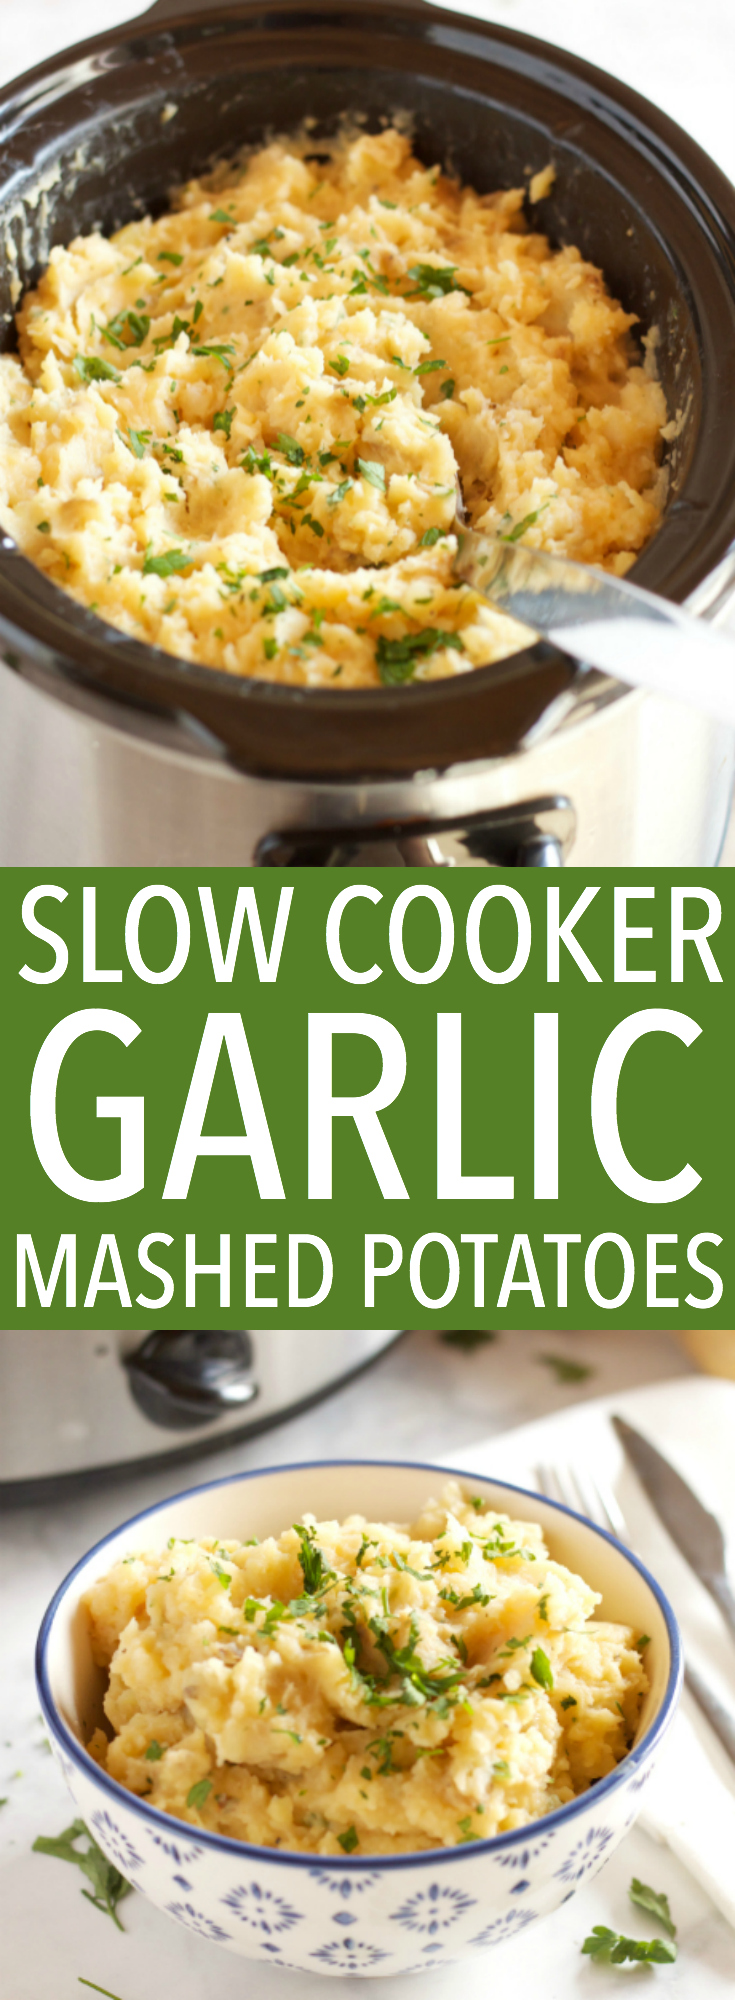 These Rustic Slow Cooker Garlic Mashed Potatoes are a delicious easy to make holiday side dish that's perfect for any holiday crowd! Recipe from thebusybaker.ca! #holidaysidedish #holidaymashedpotatoes #christmassidedish via @busybakerblog